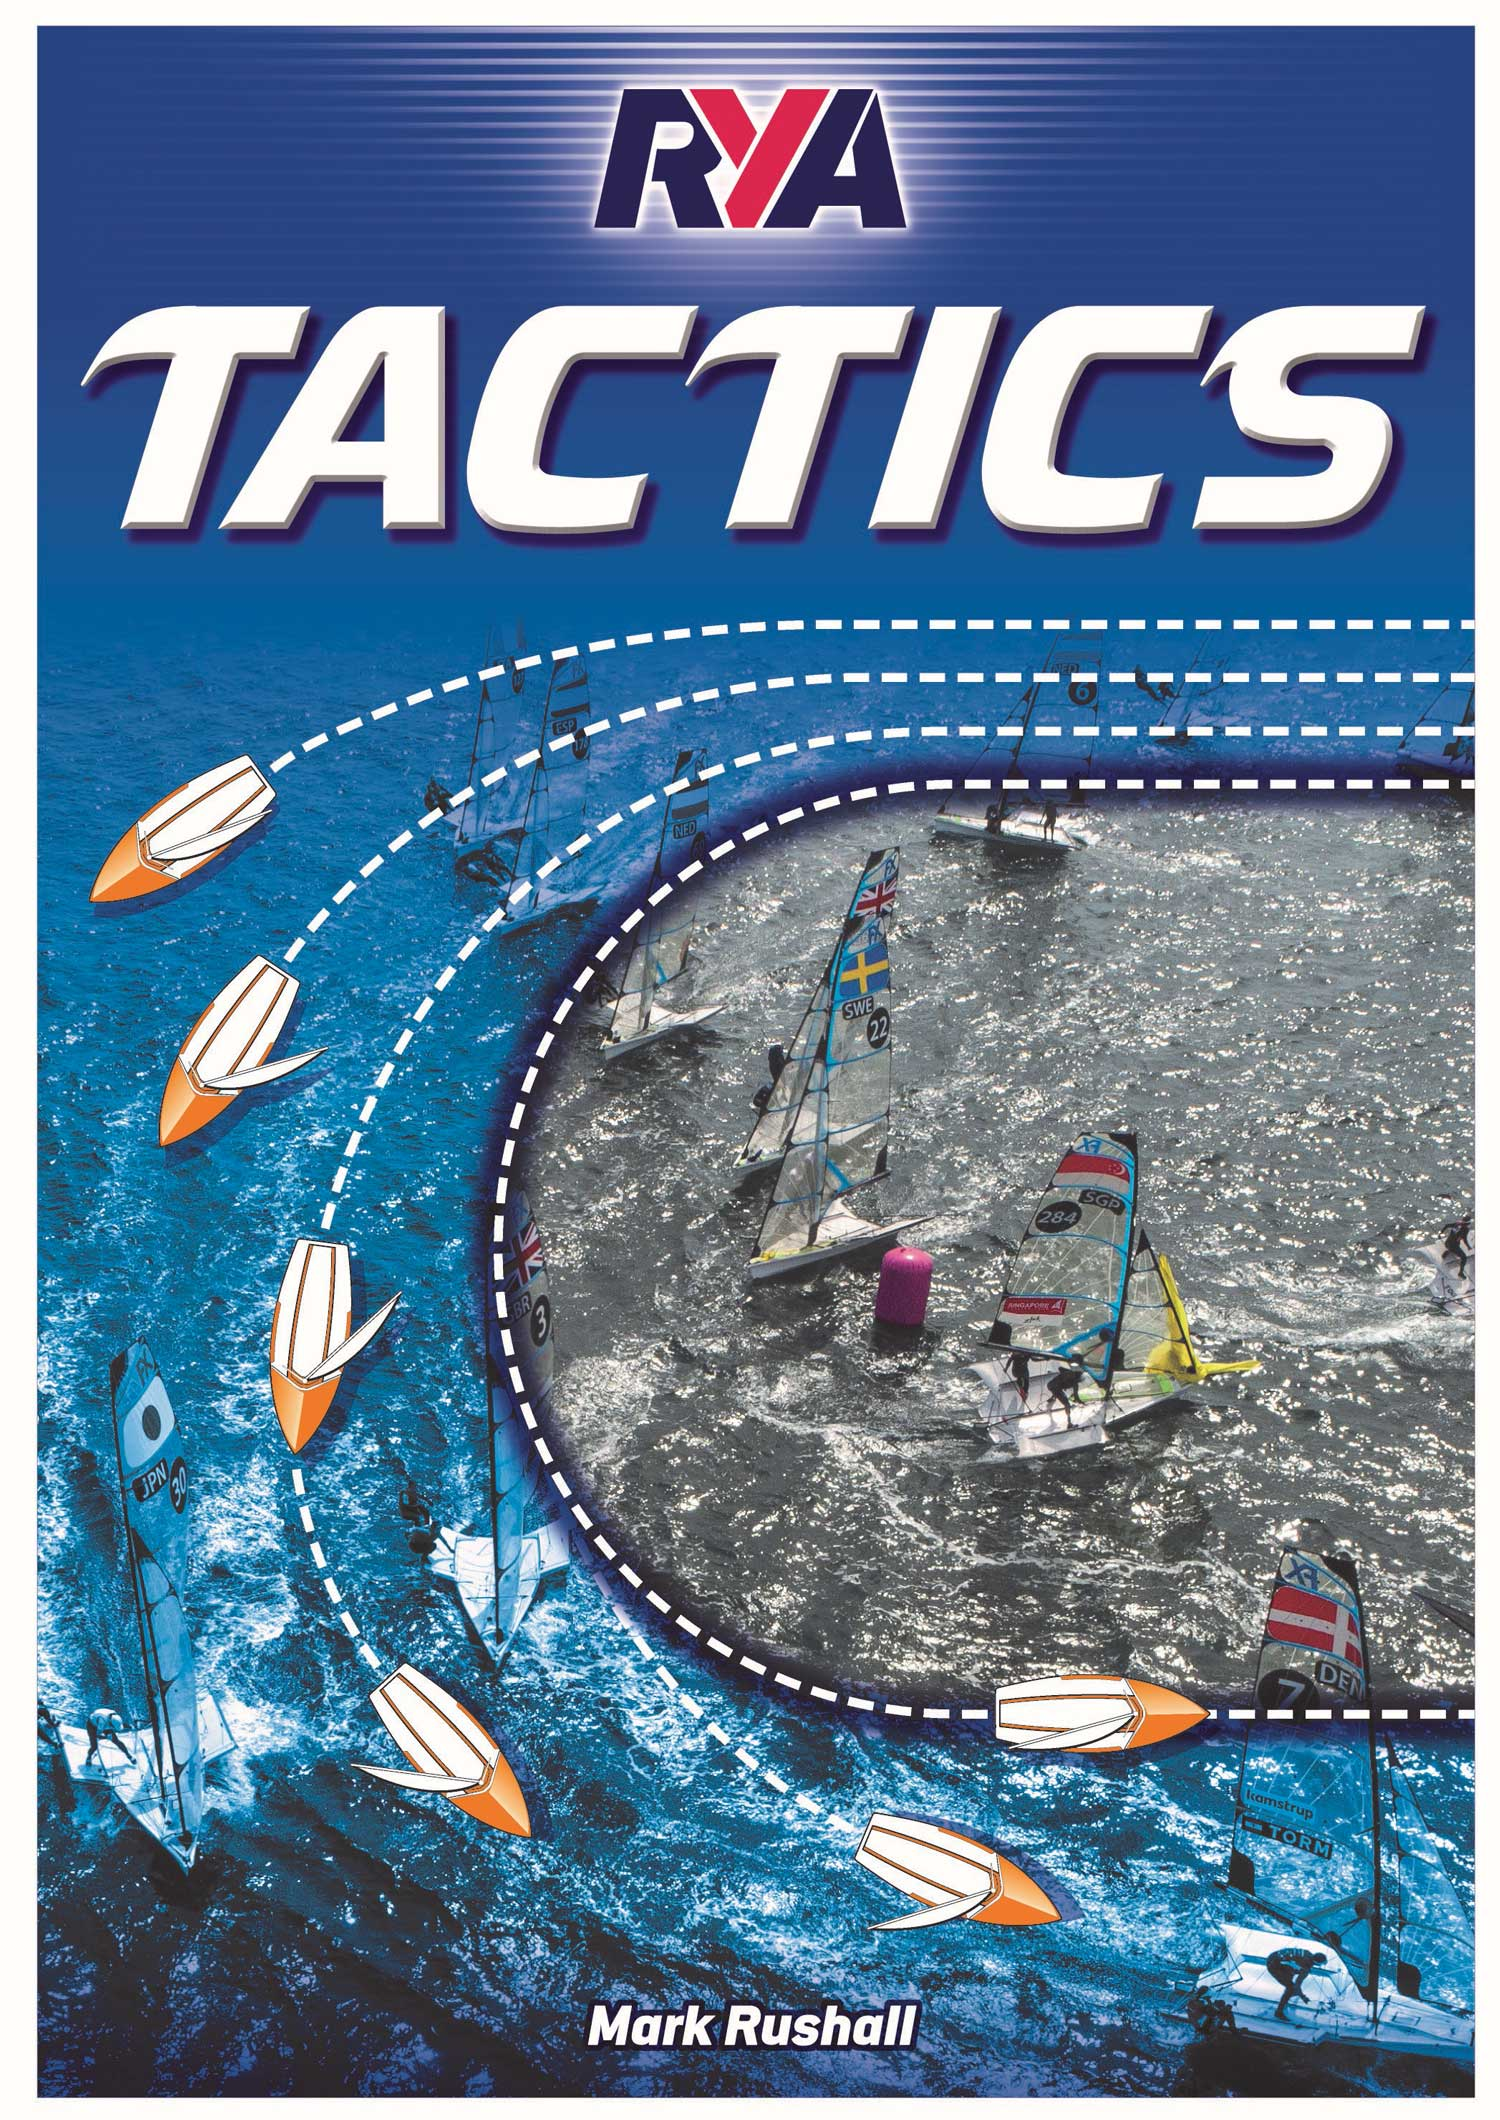 RYA Tactics 3rd Edition By Mark Rushall